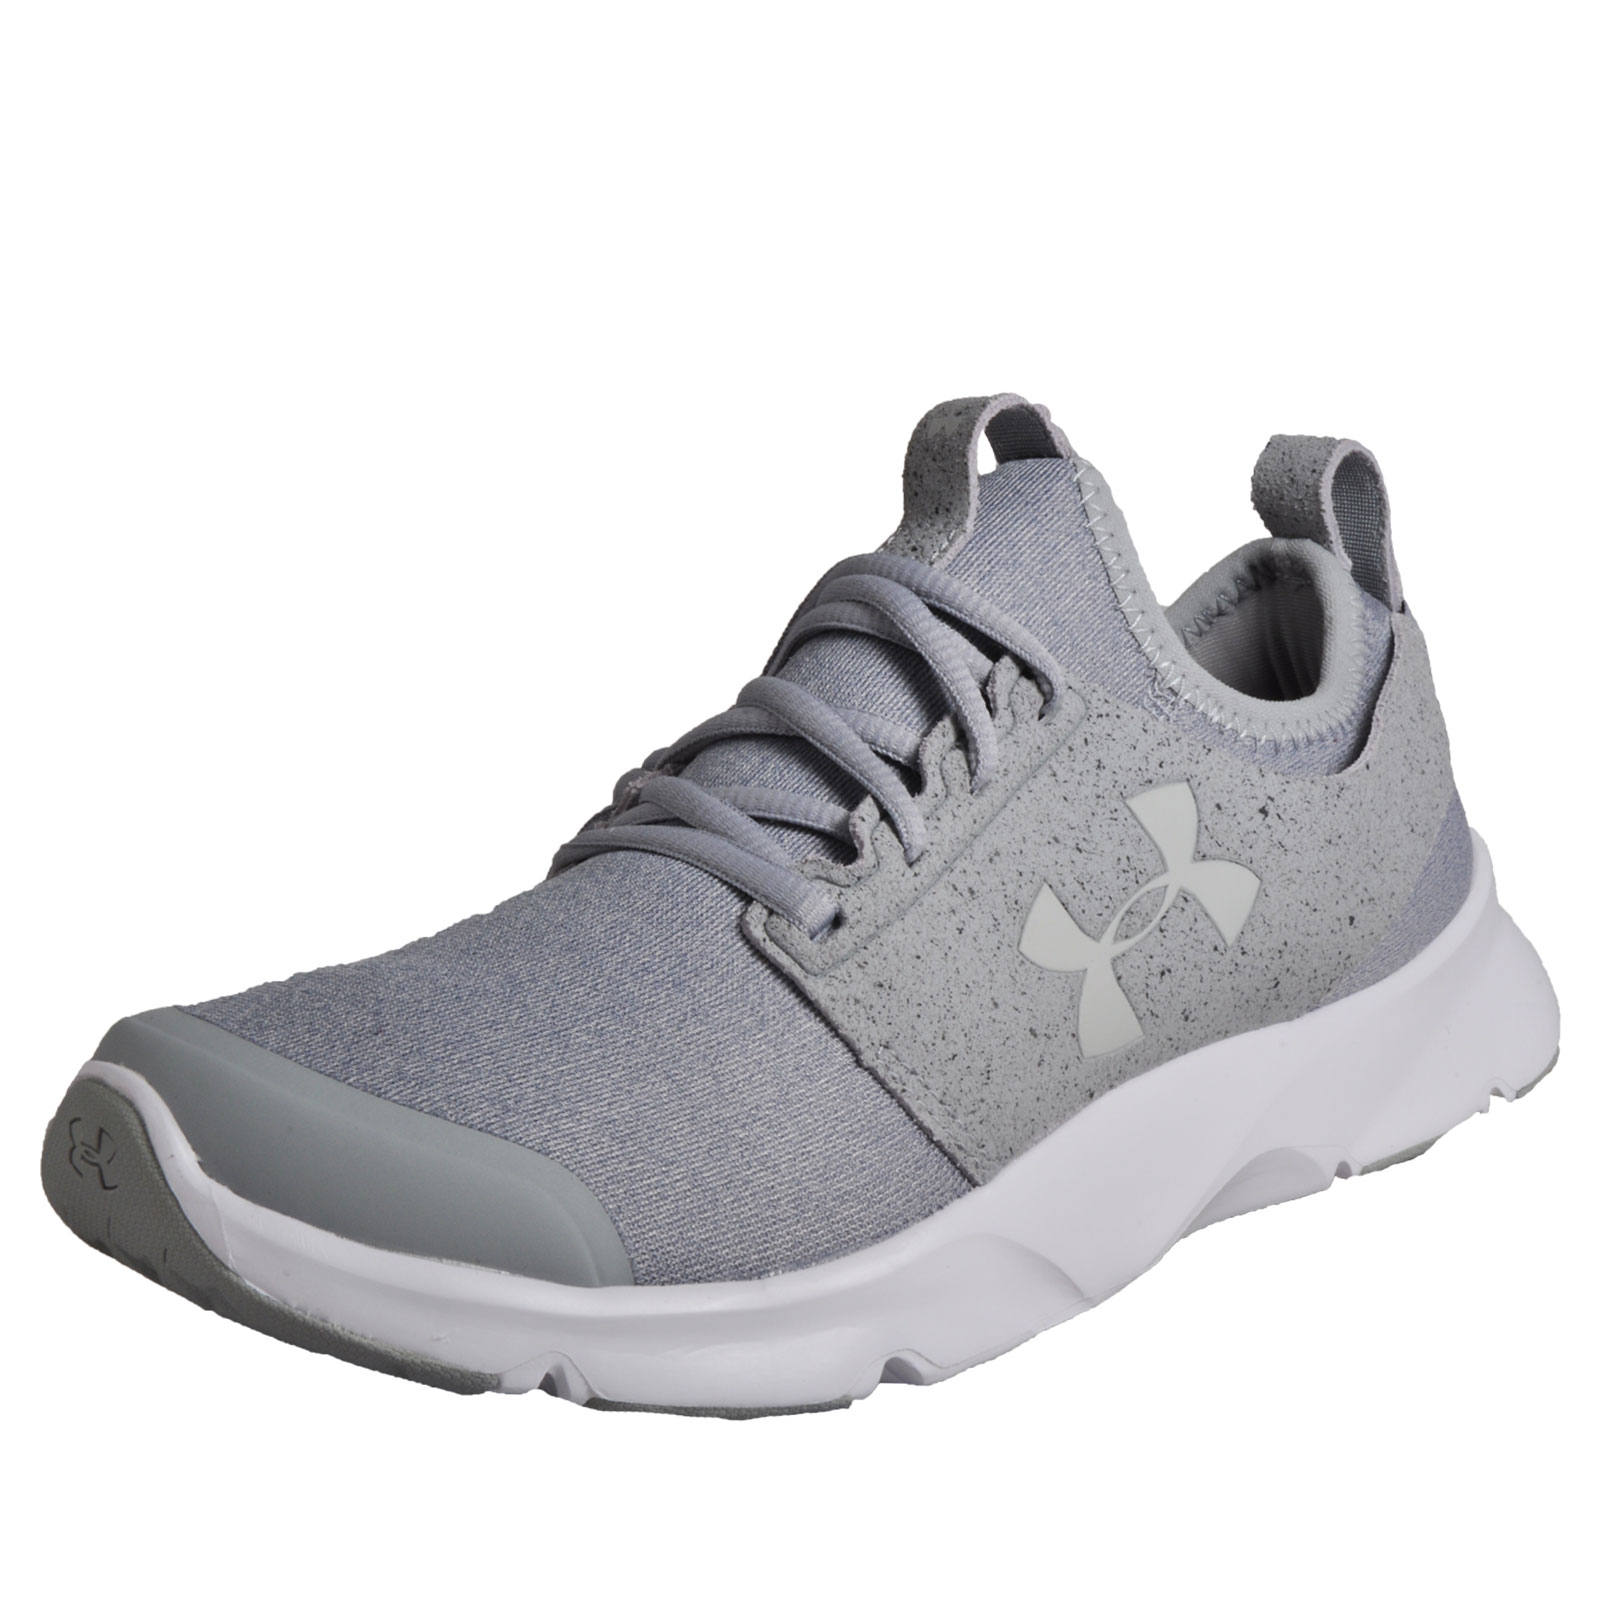 735d7f337d2d Details about Under Armour Mens Drift RN Mineral Premium Running Shoes  Fitness Gym Grey